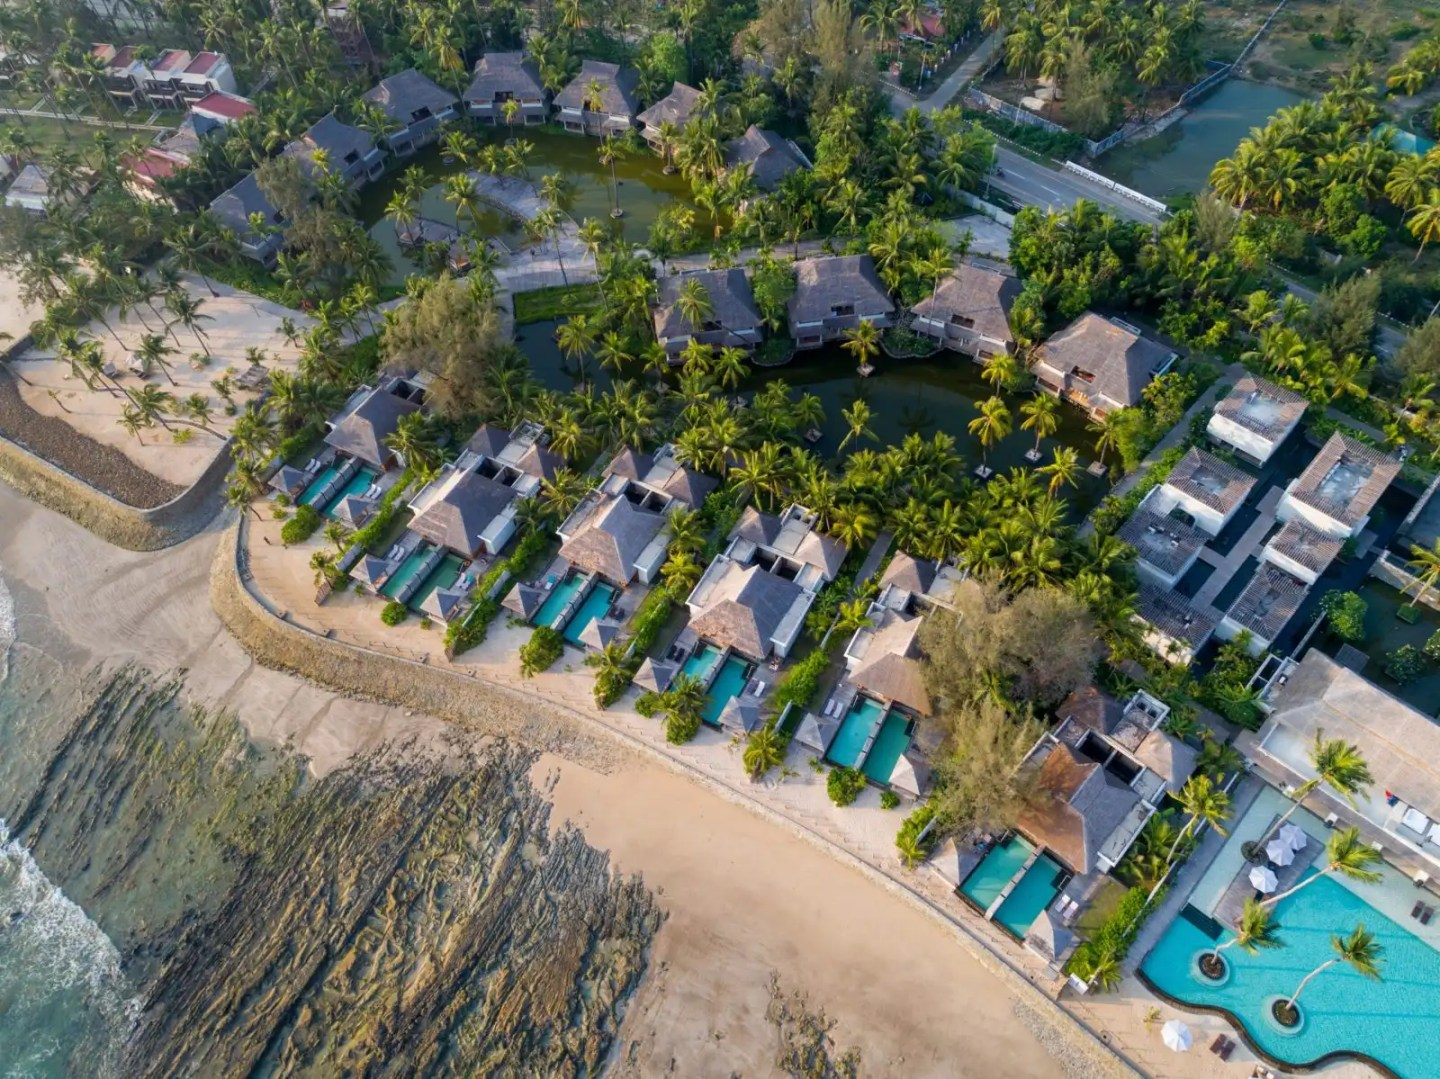 Aerial picture of Ngapali beach in Myanmar